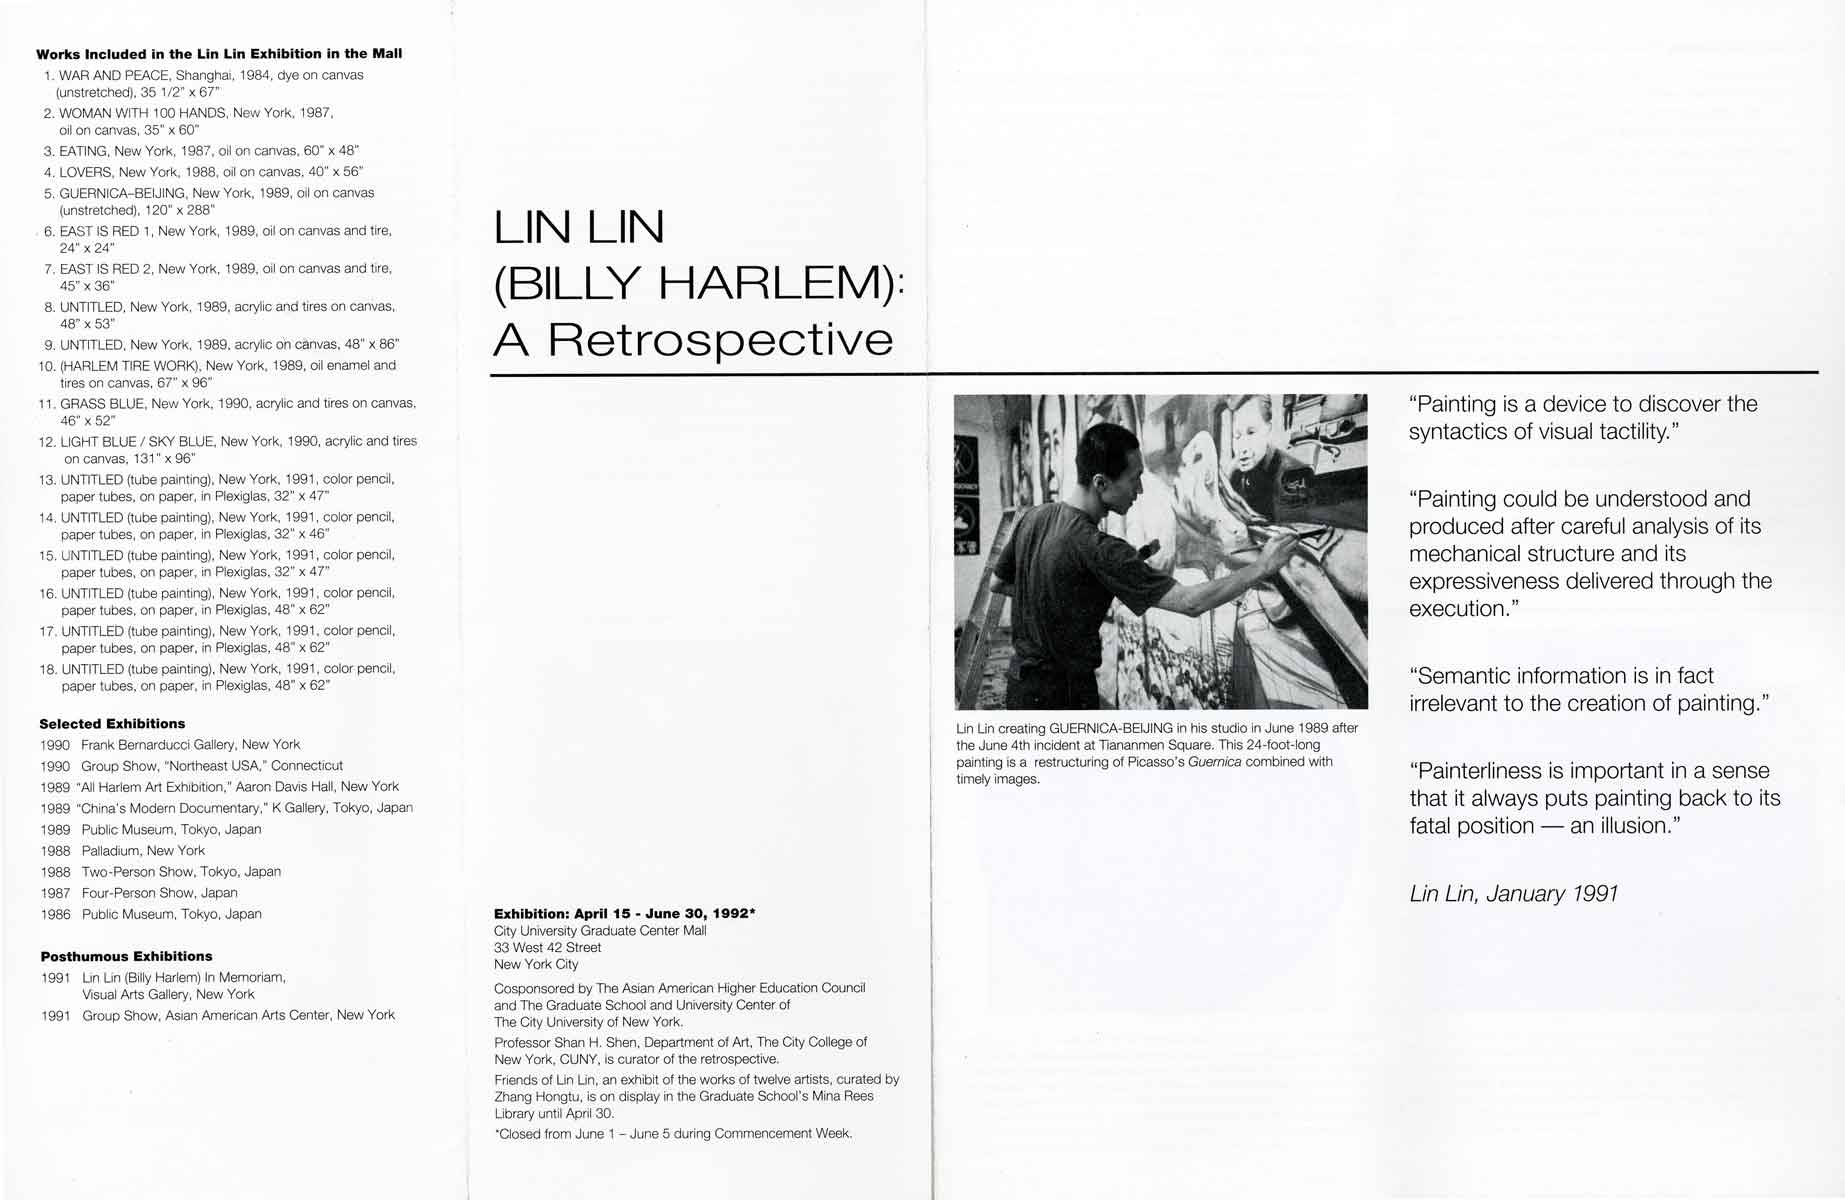 Exhibition Catalog: Lin Lin (Billy Harlem): A Retrospective